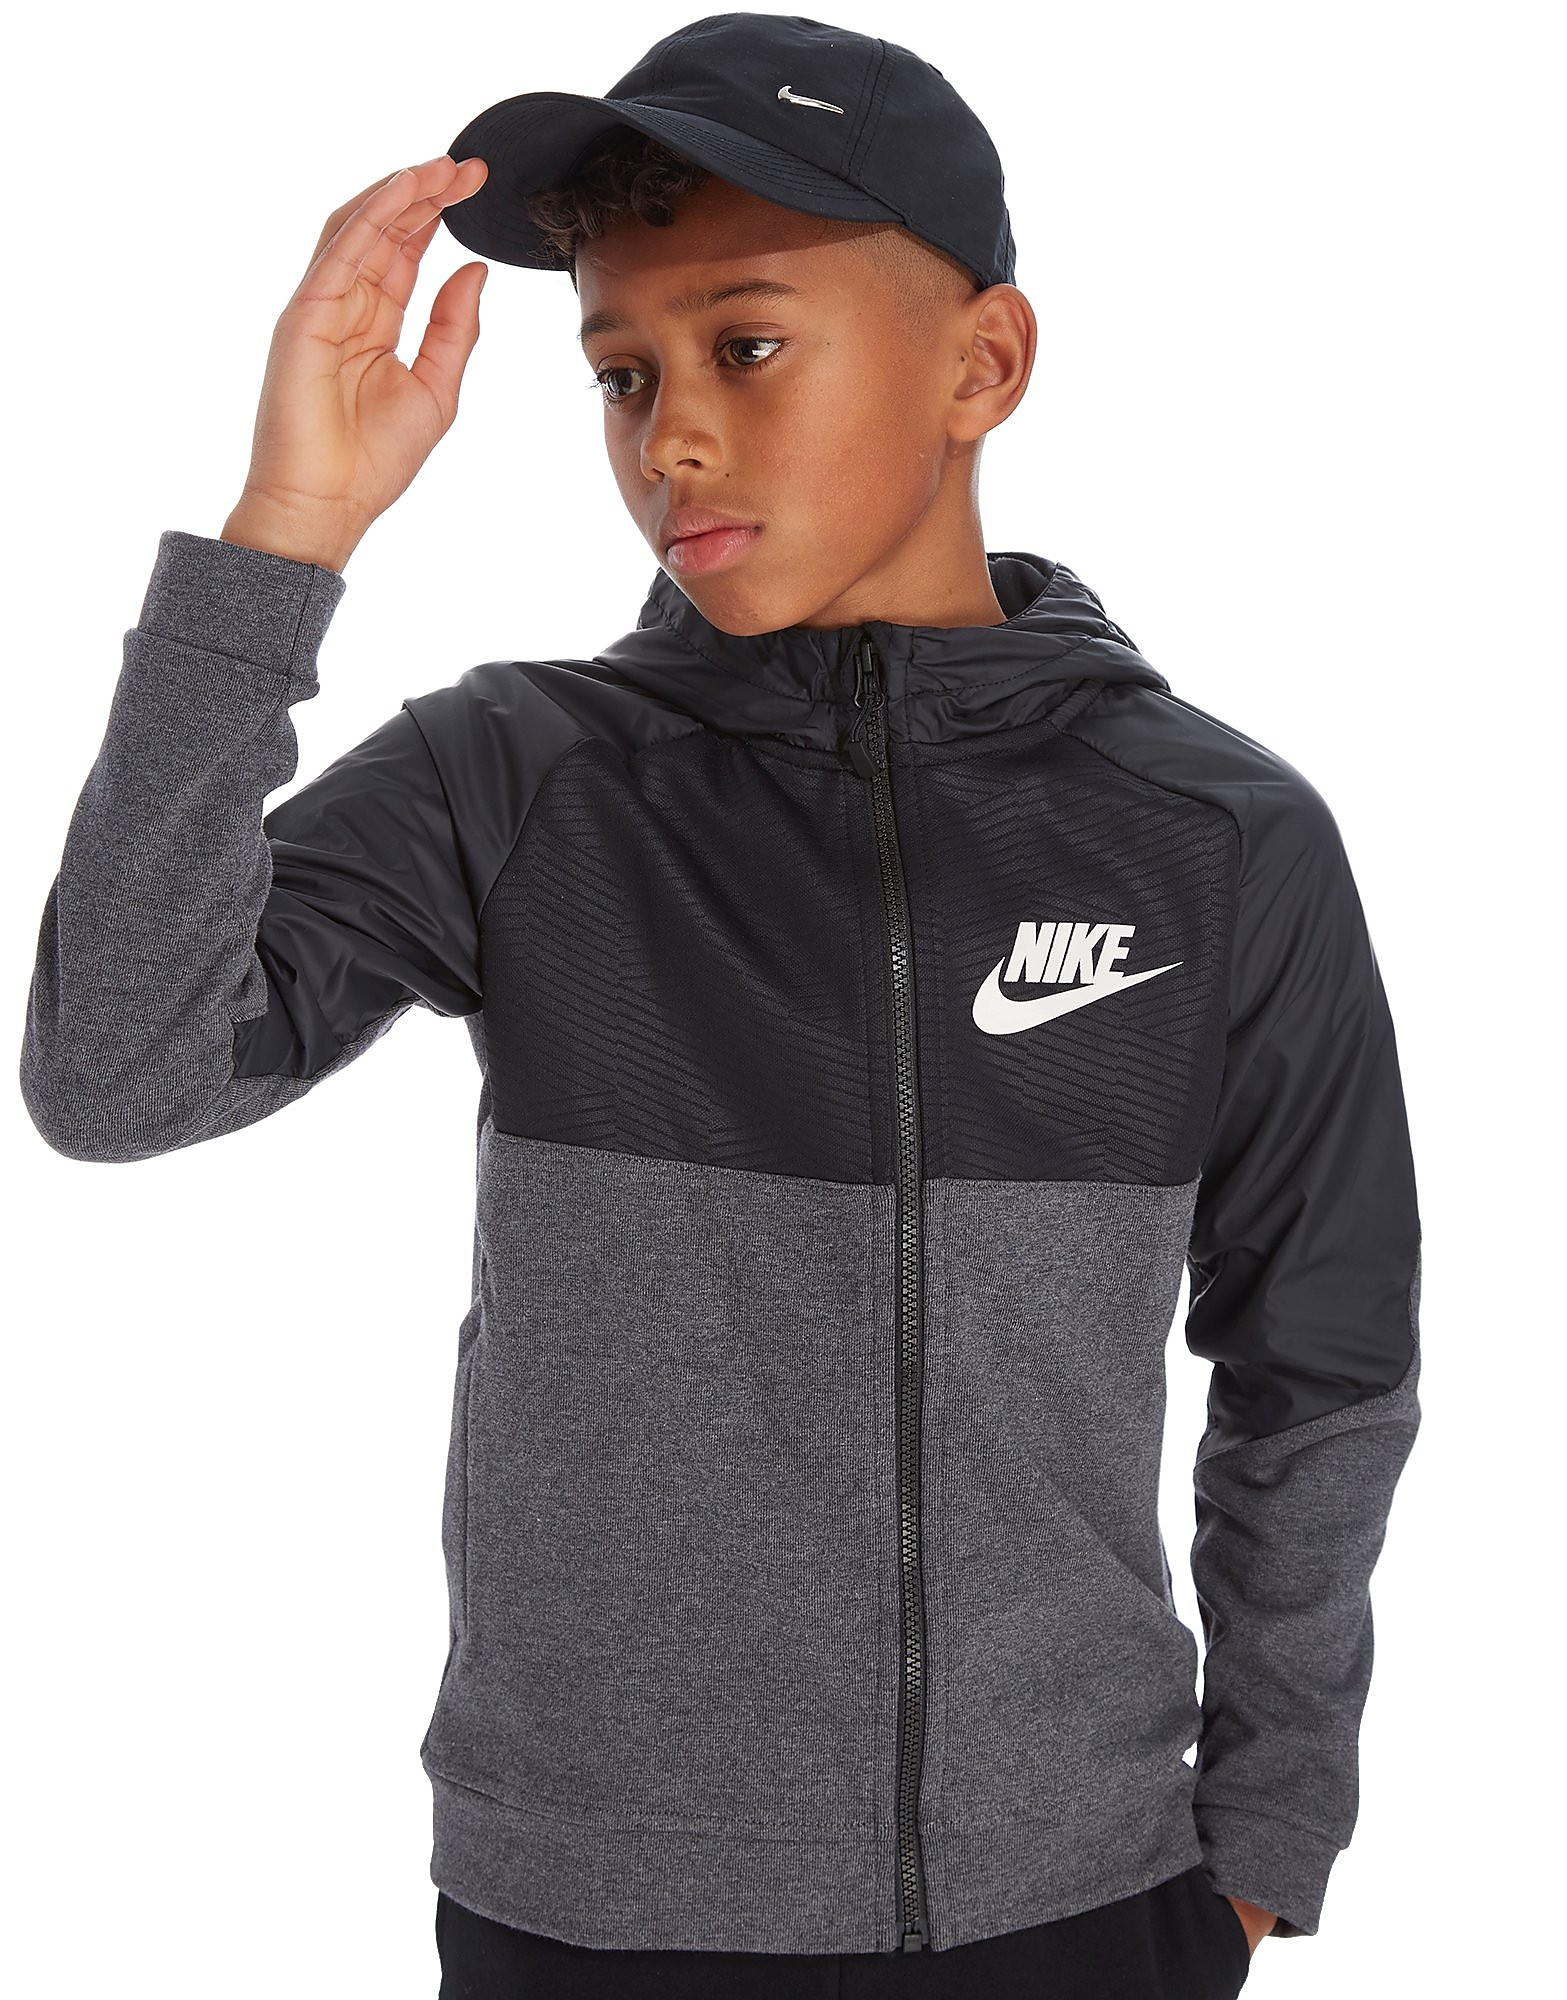 Nike chaqueta con capucha Advance Winter júnior